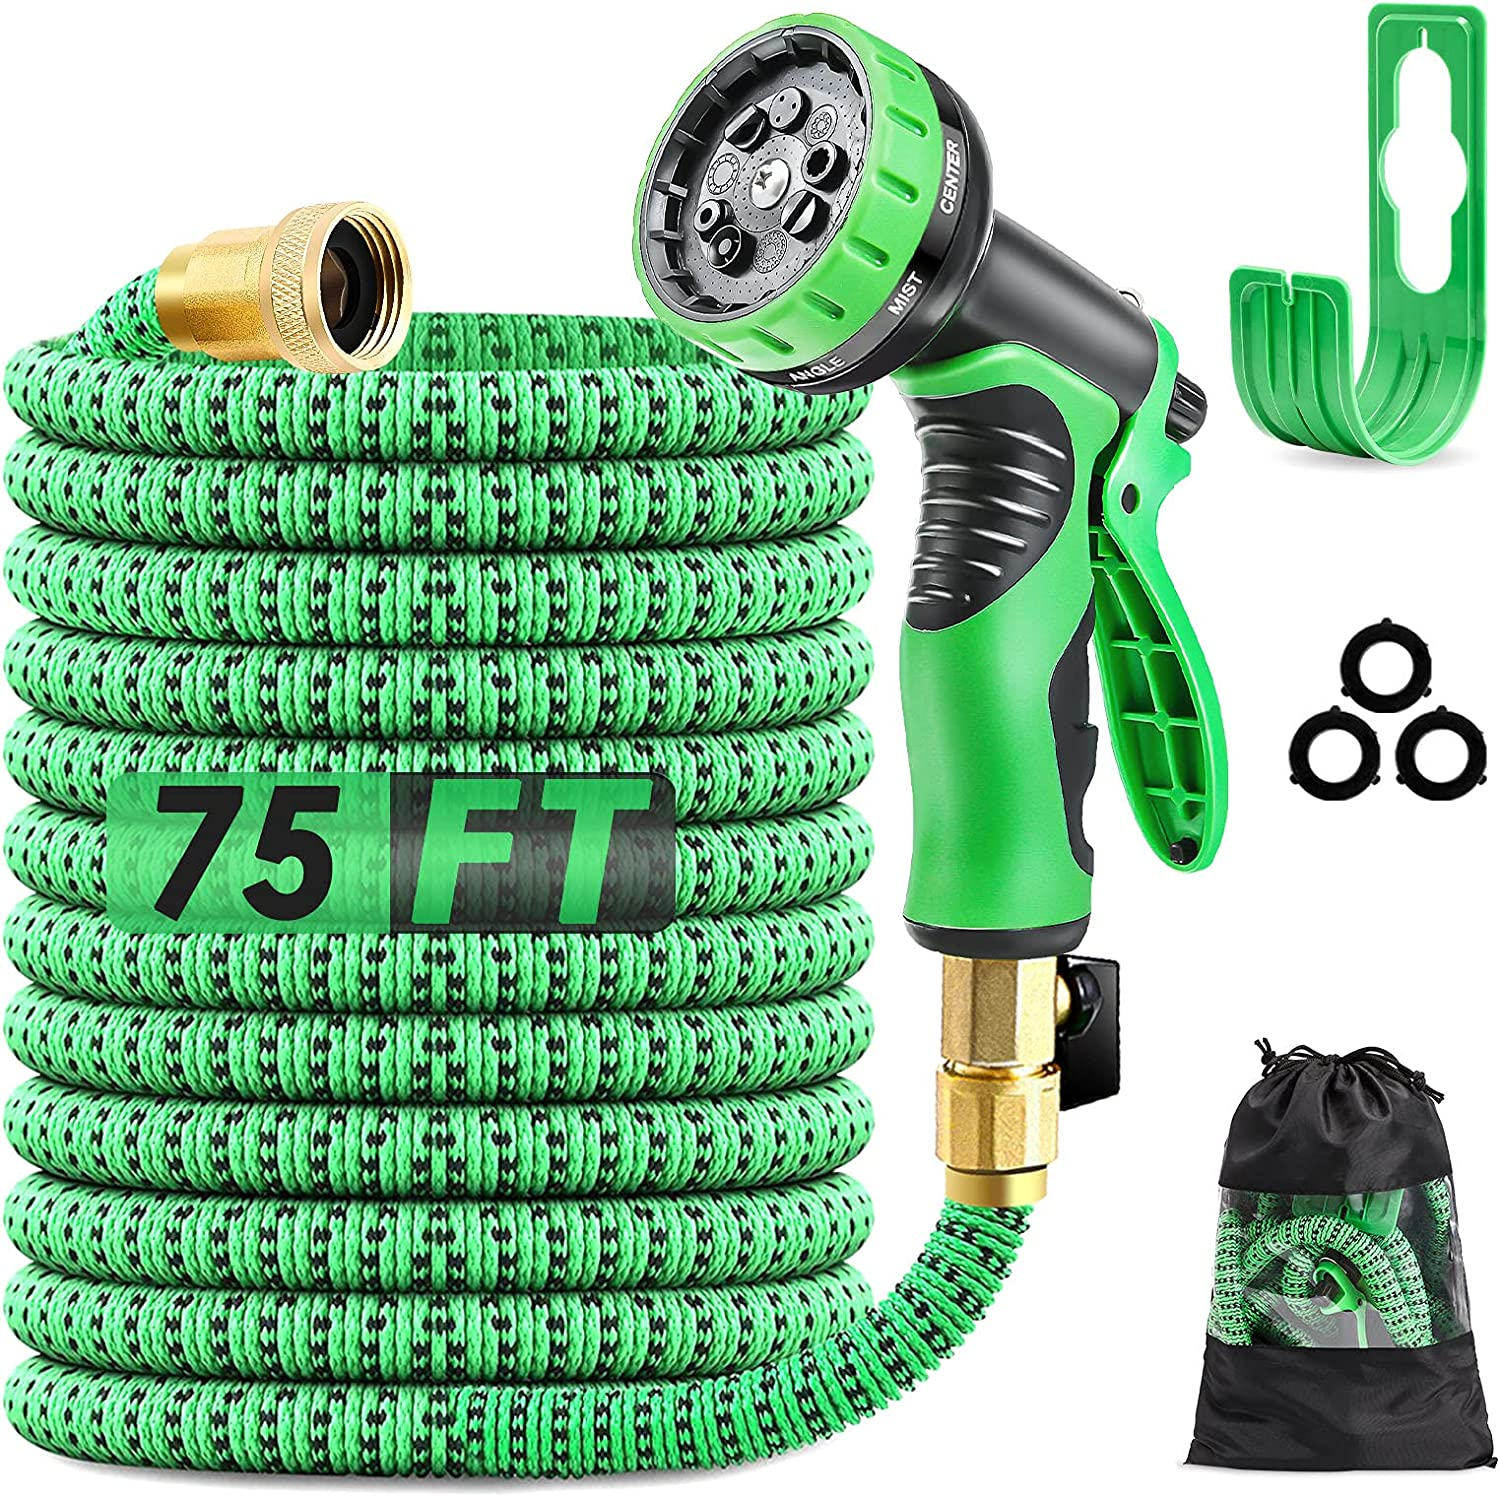 Expandable Garden Hose 75ft, PATHONOR Flexible Water Hose with 9 Function Spray Nozzle, Extra Strength Fabric with 3/4